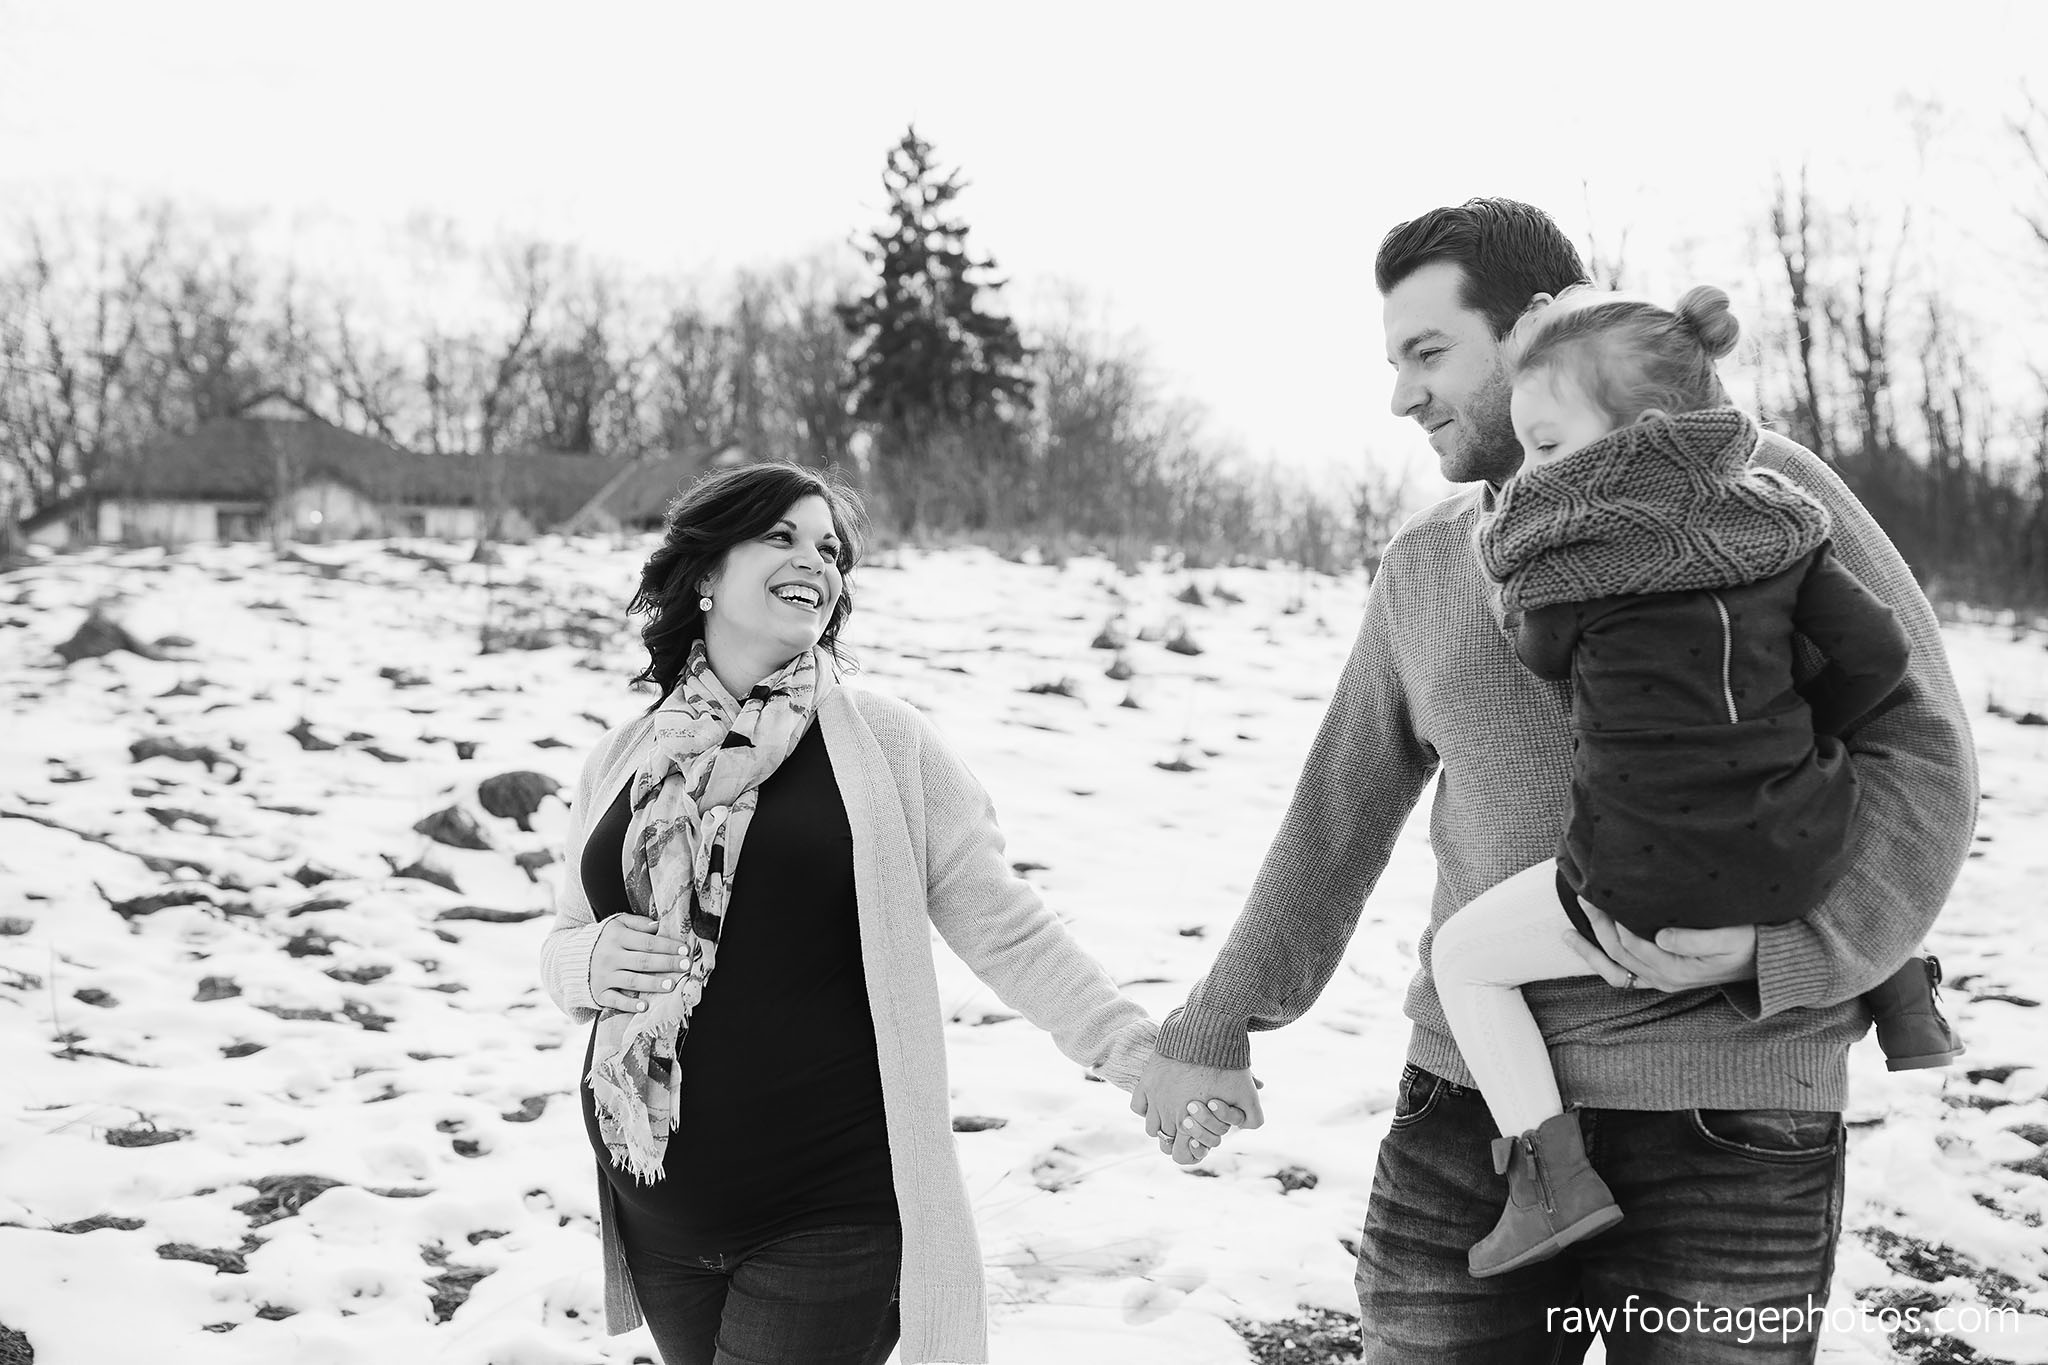 London_Ontario_Maternity_Photographer-Maternity_Session-Family_Photography-Winter_Photos-Raw_Footage_Photography006.jpg